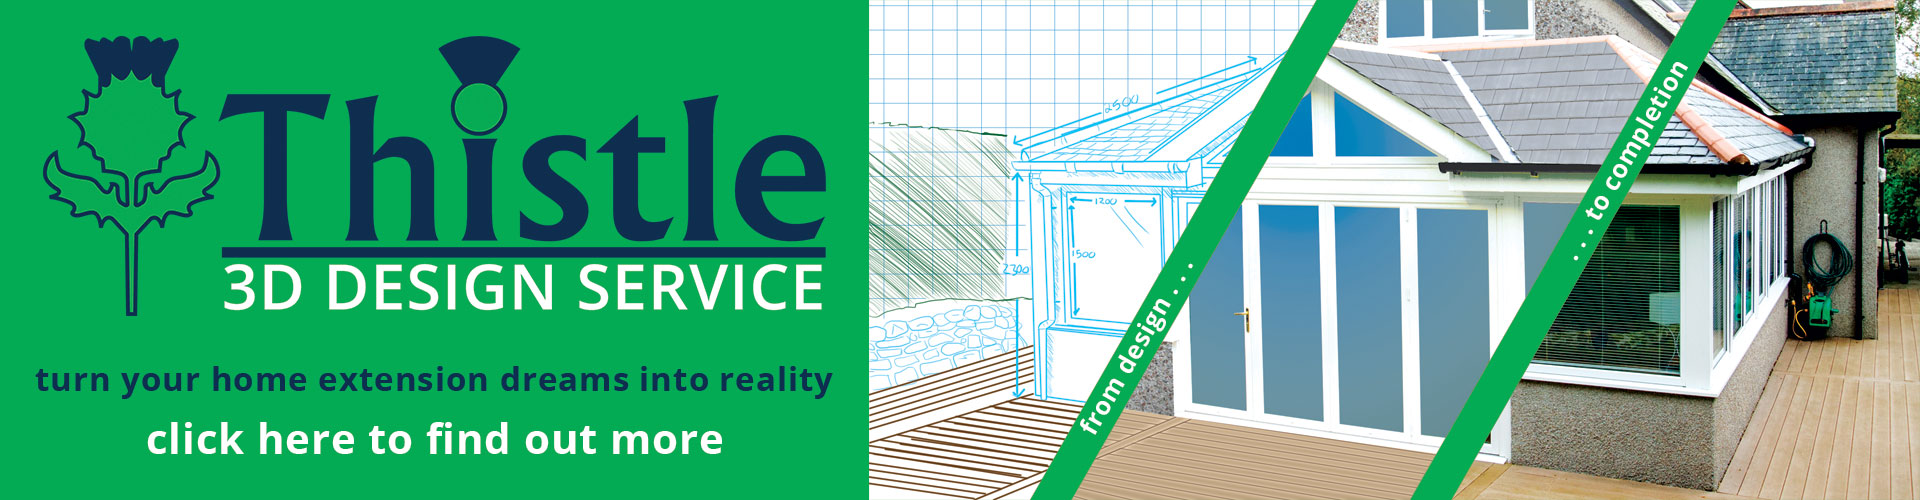 Tiled Roof Extensions & Sunrooms Aberdeen, Aberdeenshire & North East Scotland: FREE 3D Design Service